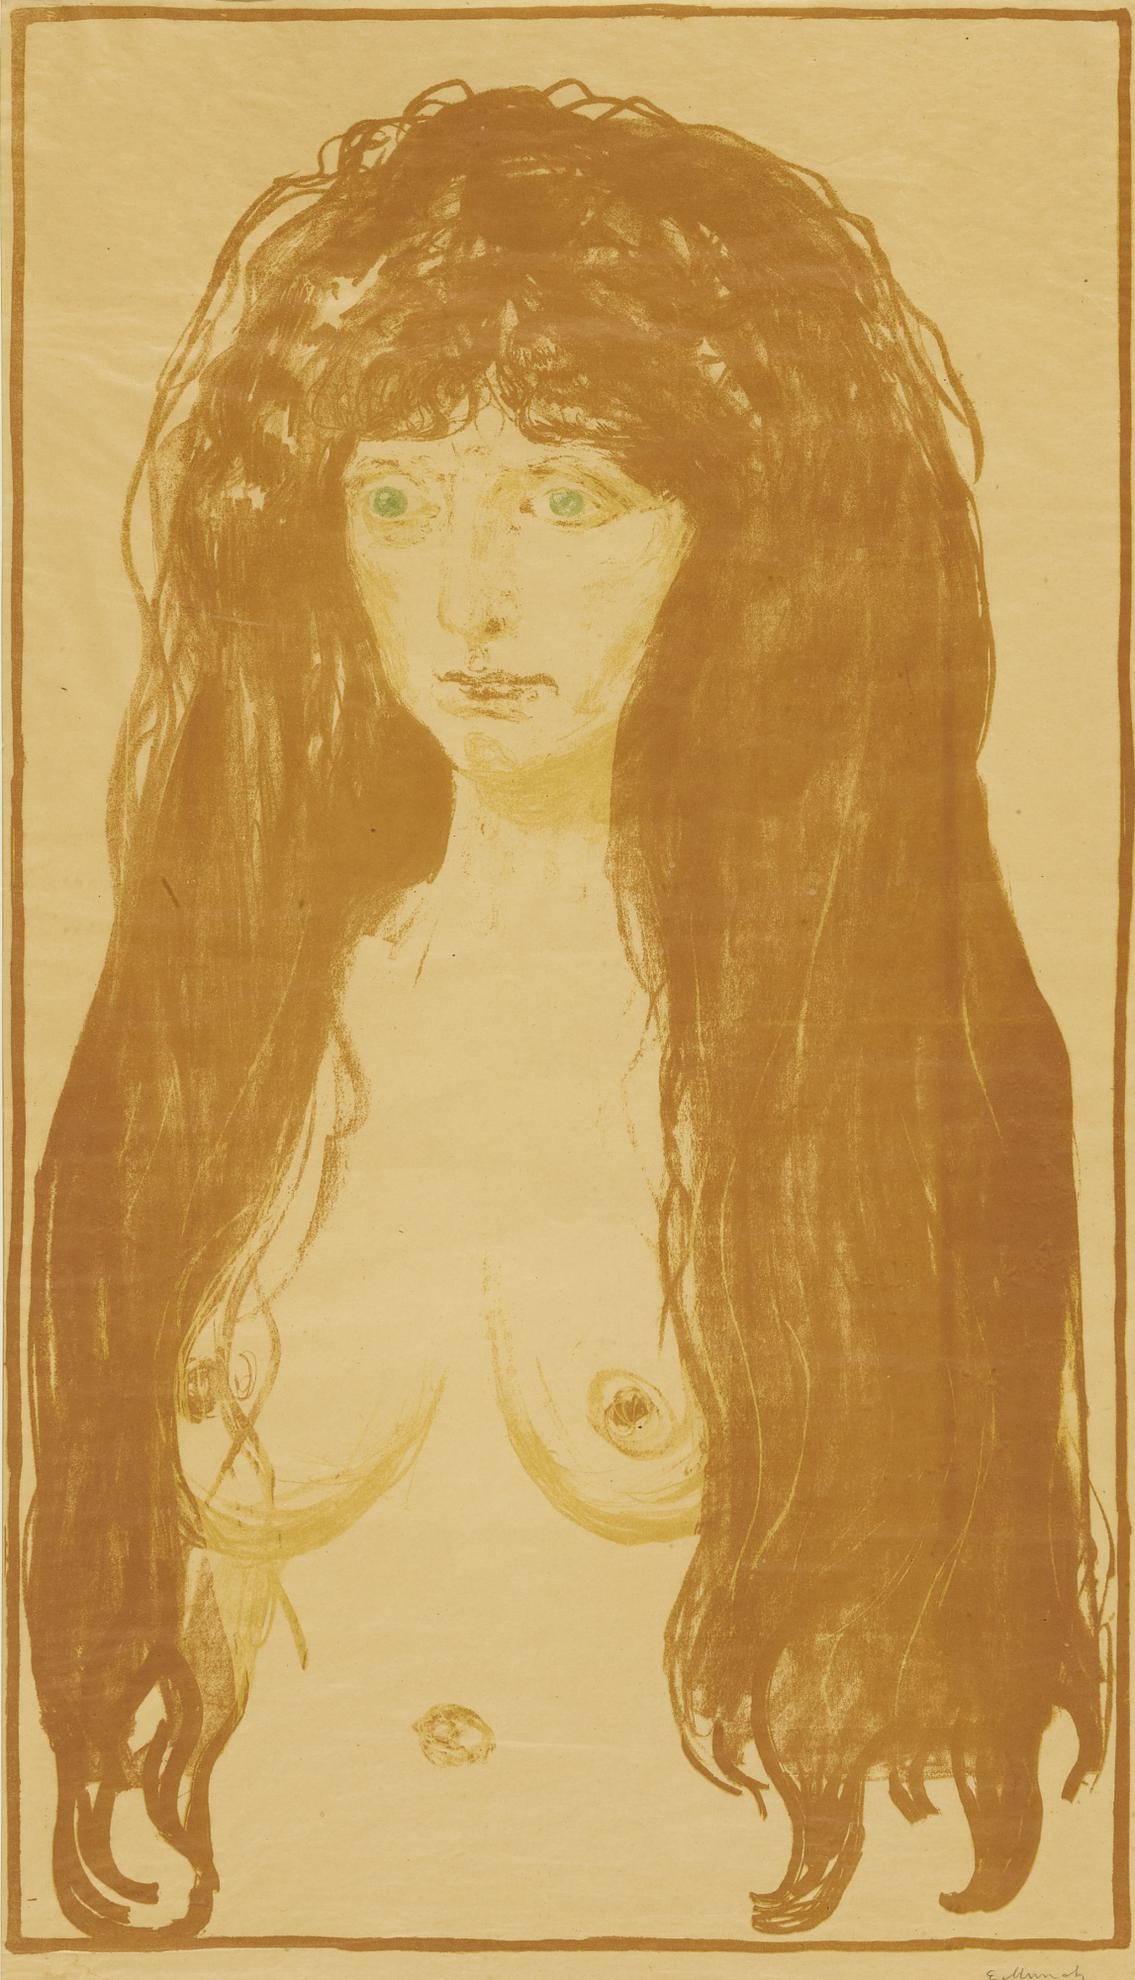 Edvard Munch-Woman With Red Hair And Green Eyes. The Sin (Schiefler 142; Woll 198)-1902